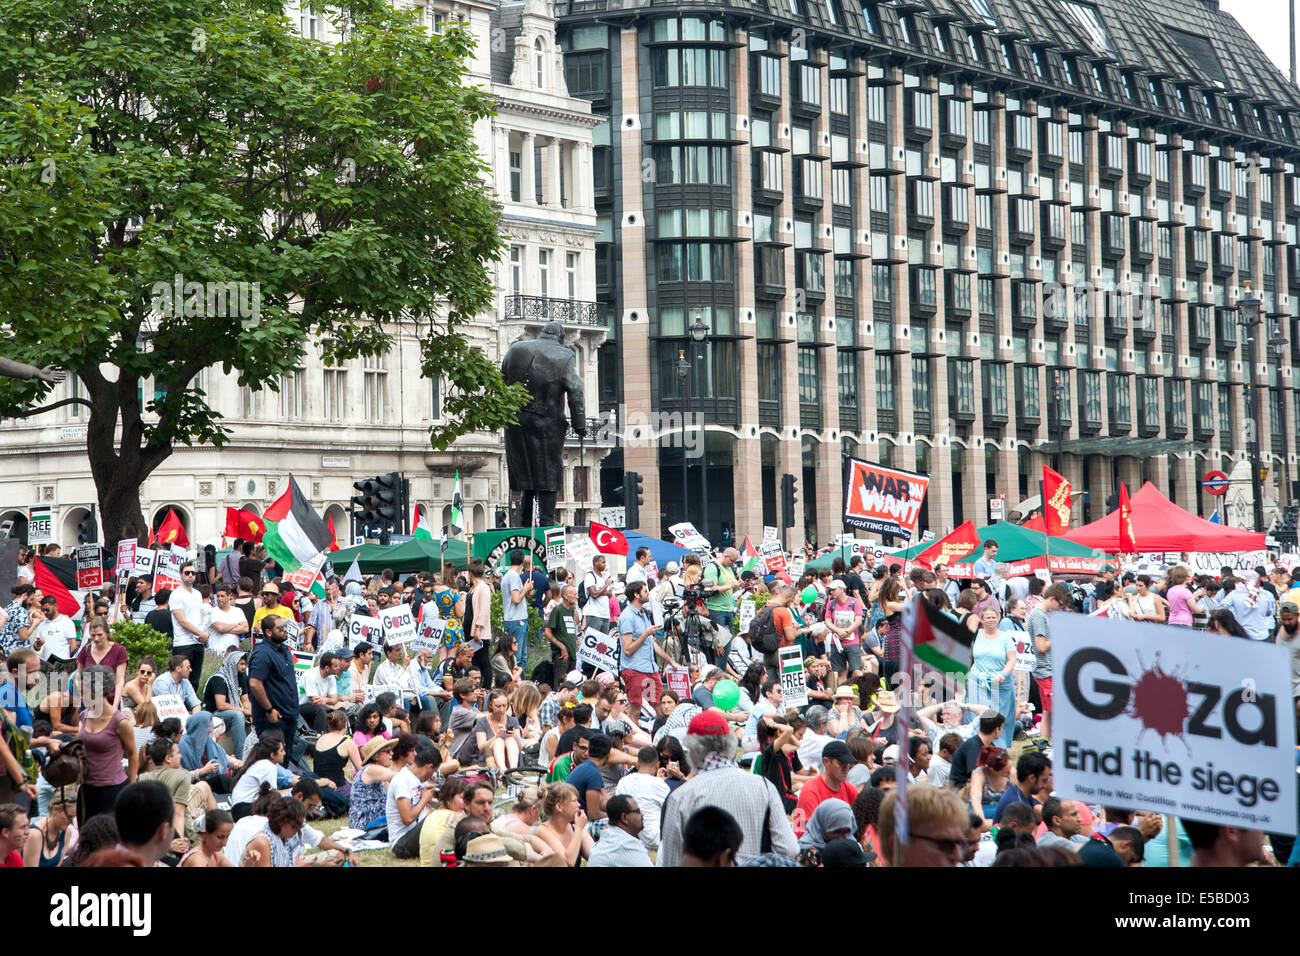 London, UK. 26th July, 2014. Tens of thousands of pro-Palestinian protesters gather for a rally at the Houses of Stock Photo